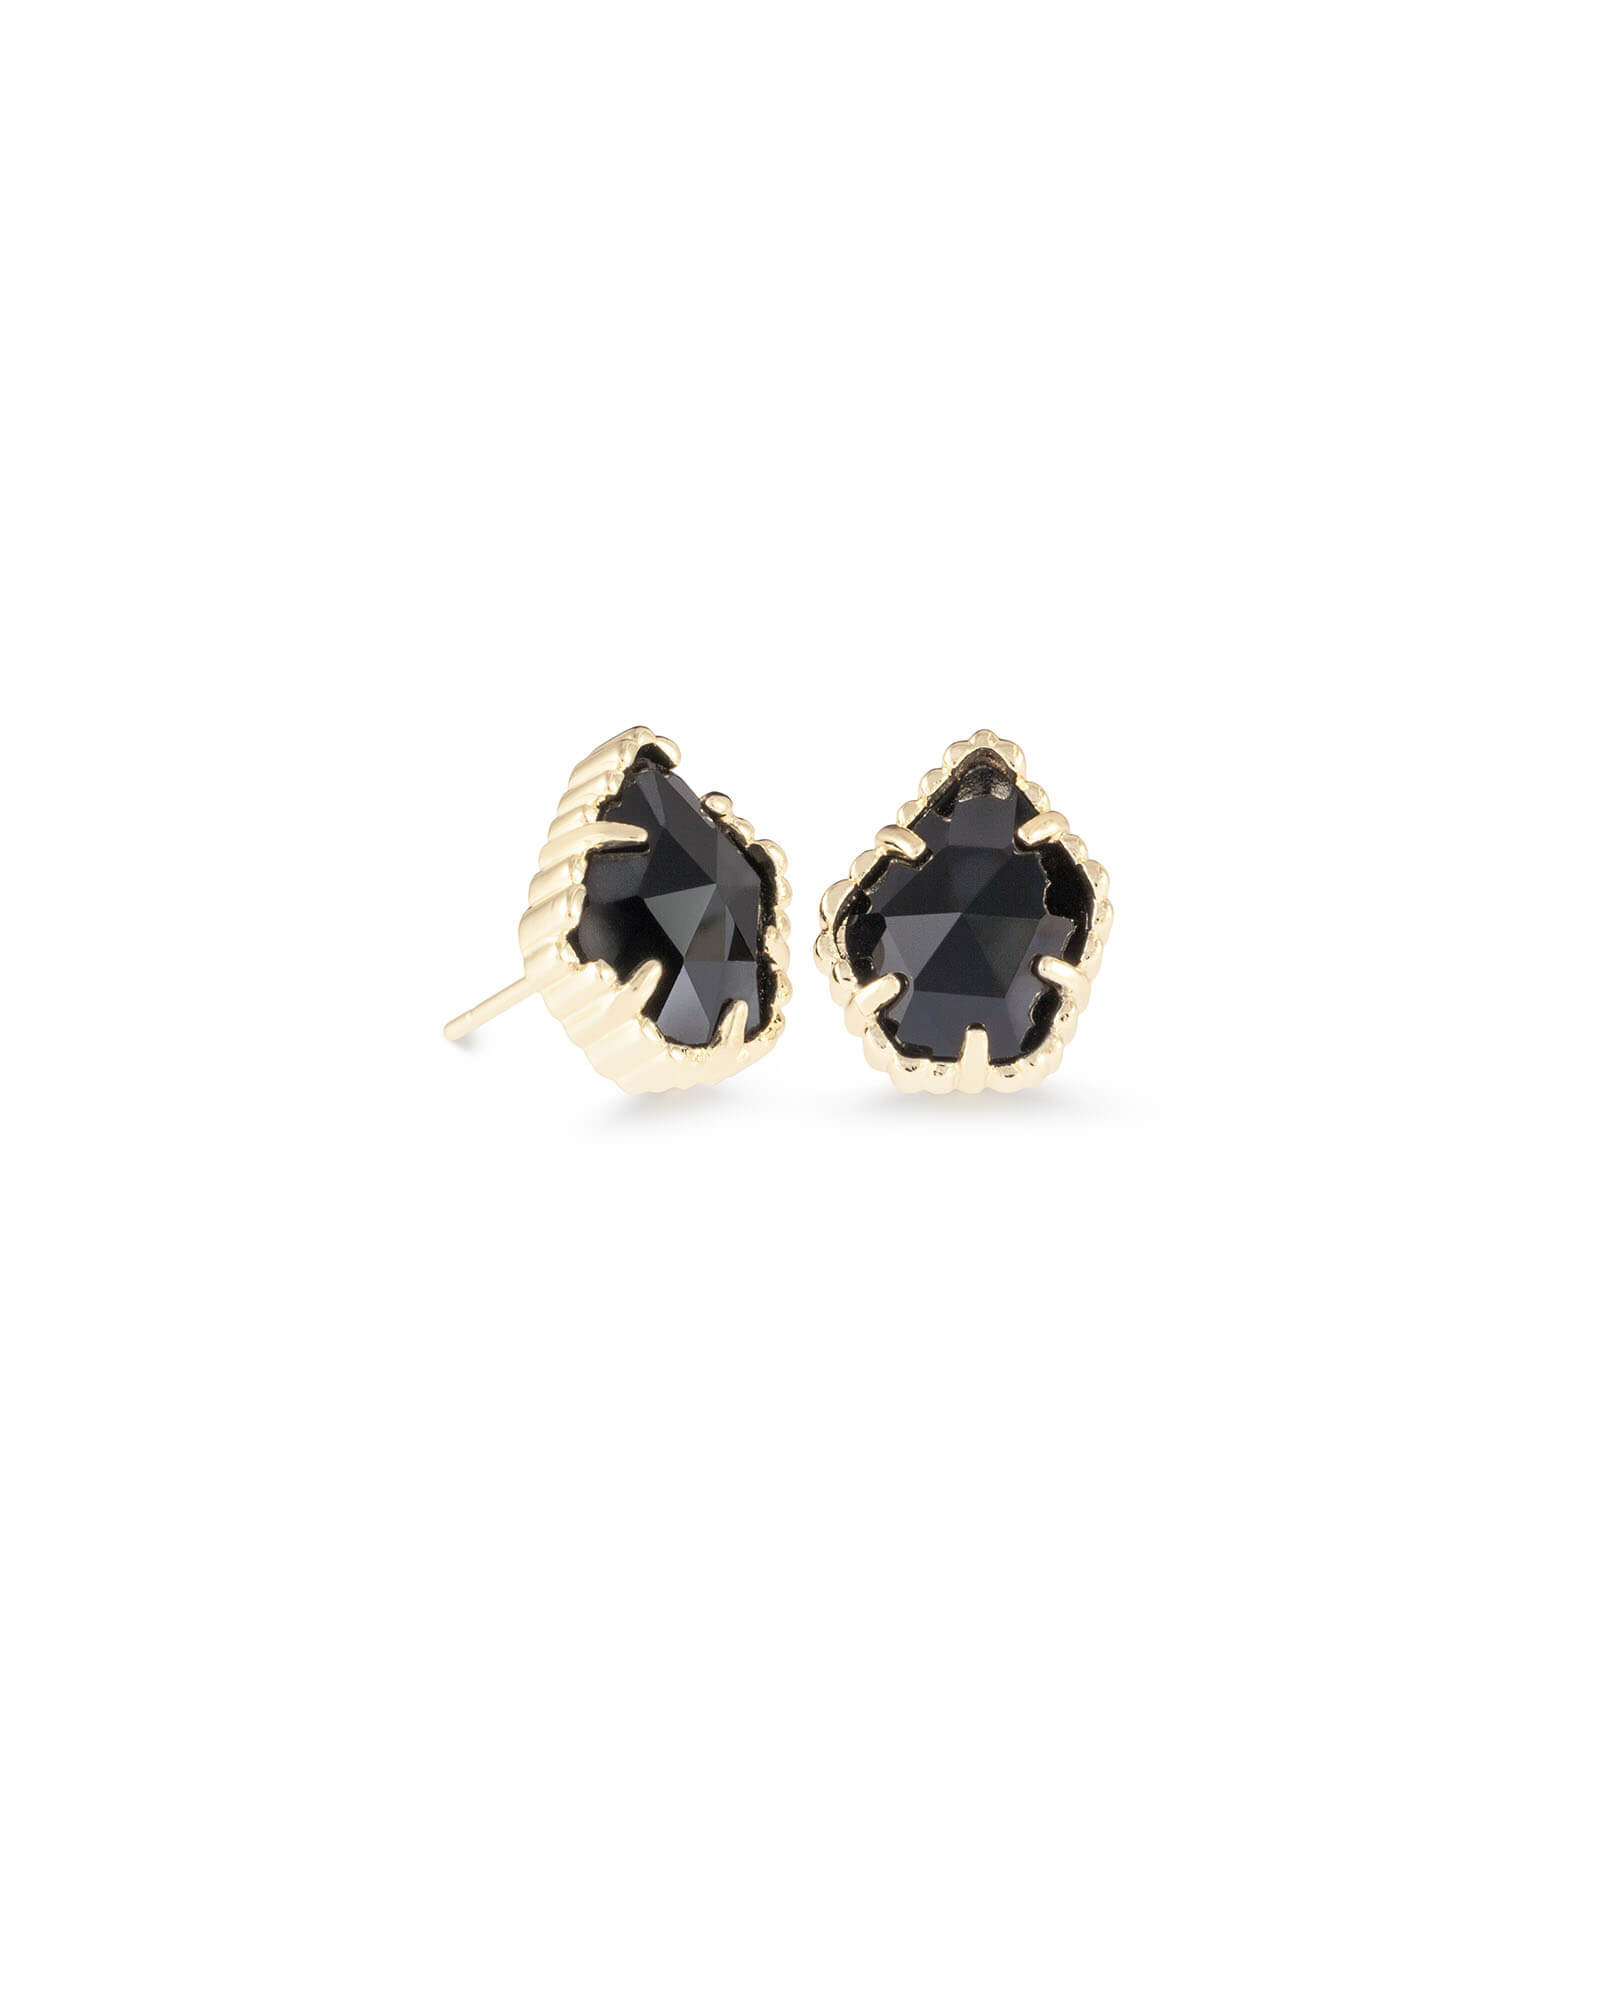 Tessa Gold Stud Earrings in Black